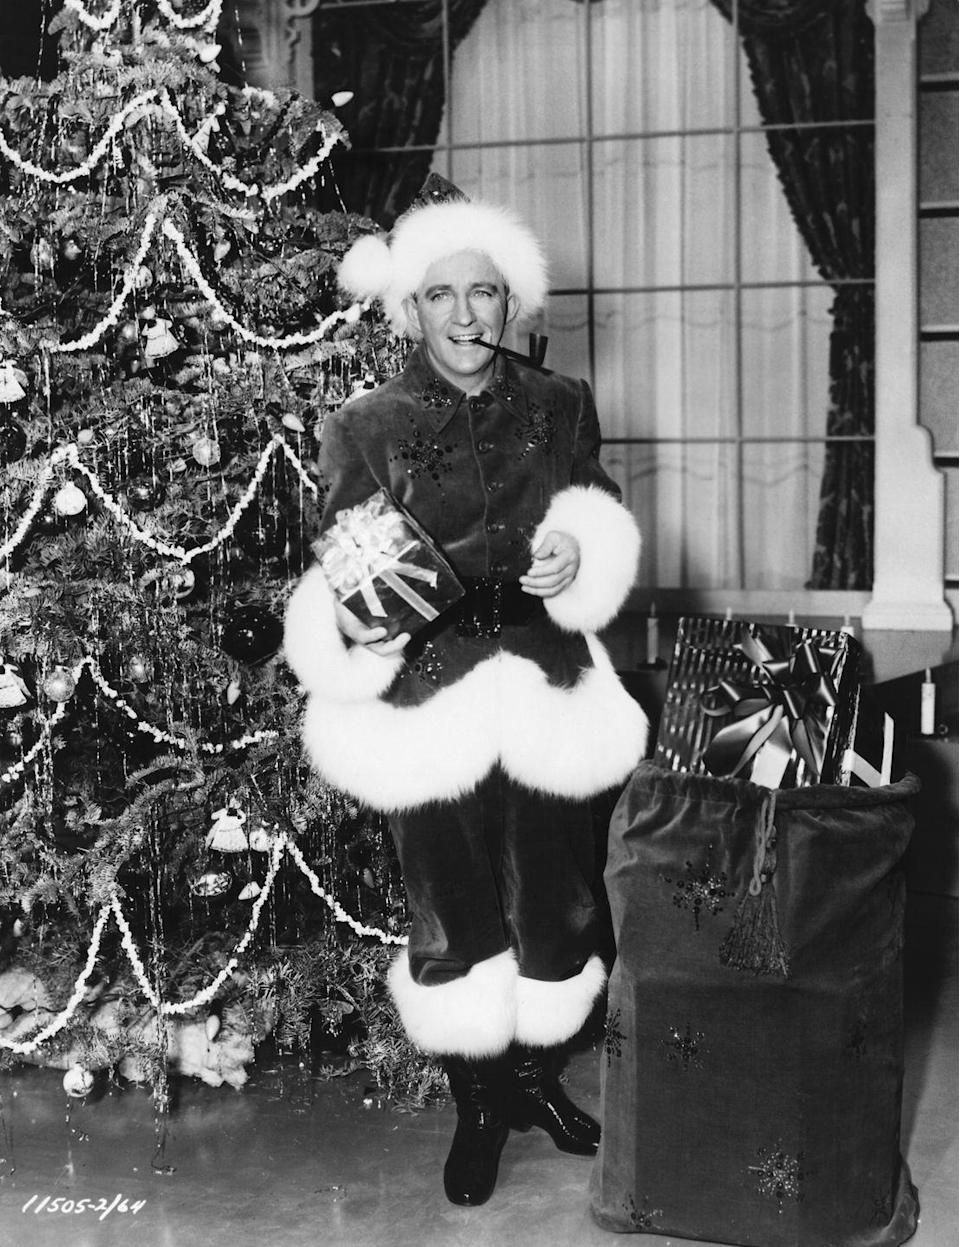 """<p>You can bet it'll be a good day when Bing Crosby puts on a Santa suit. The famous """"White Christmas"""" crooner dressed the part for a promotional shoot in 1954. </p>"""